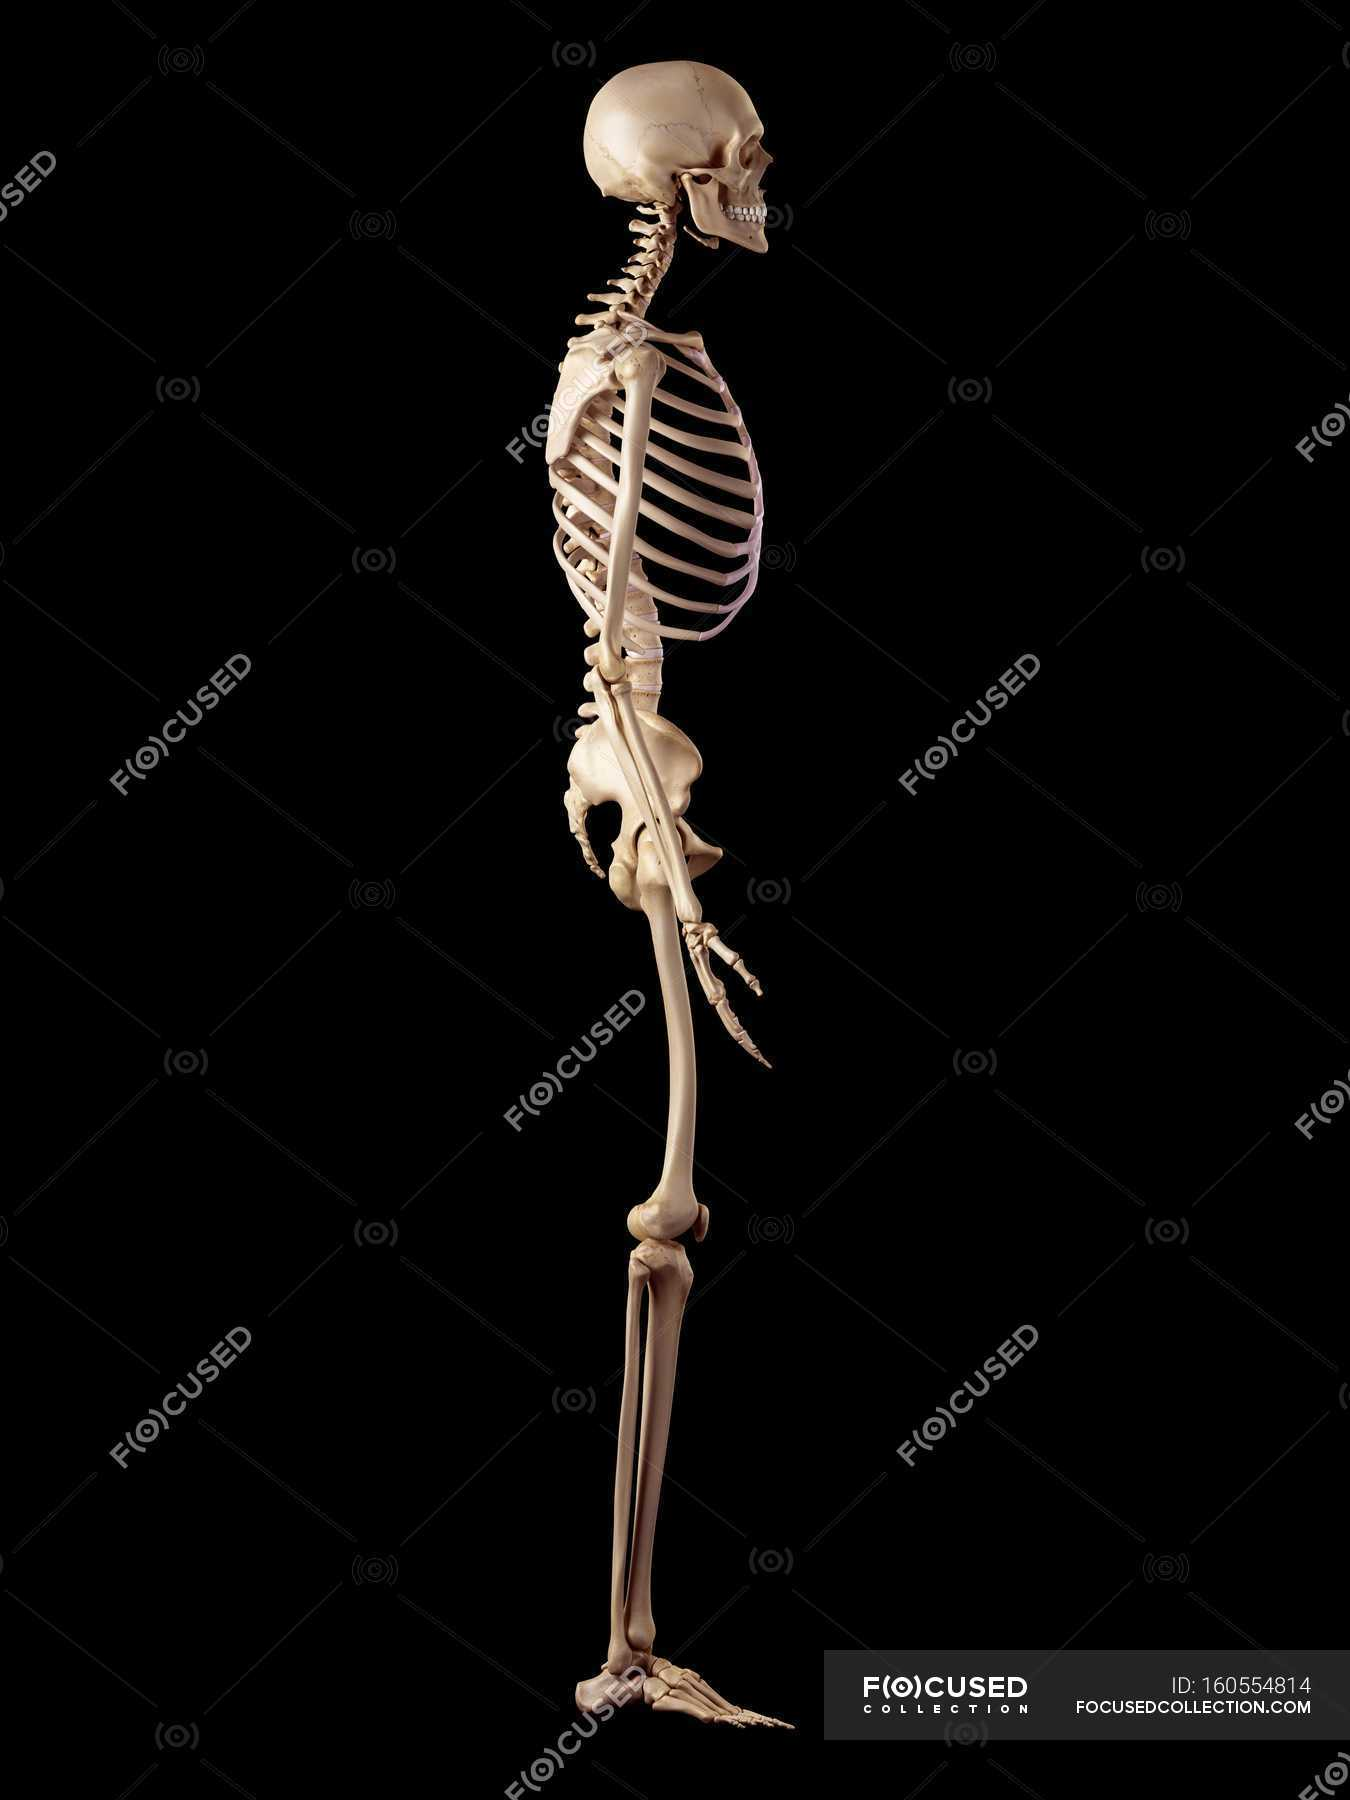 Human Skeletal Structure Side View Black Background Stock Photo